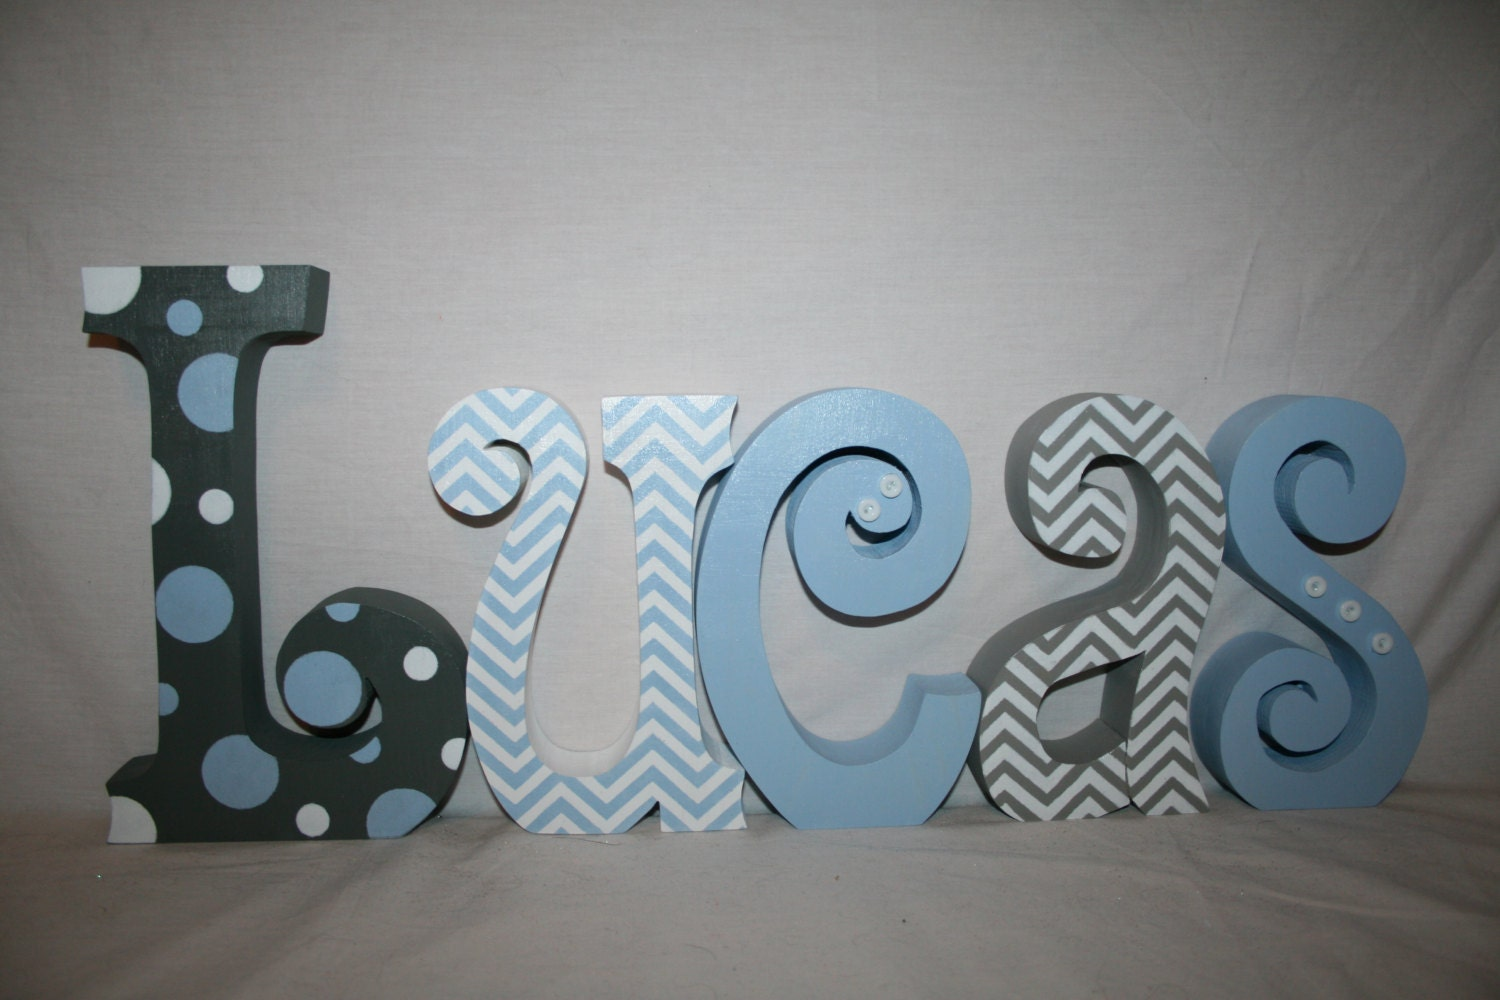 wooden letters nursery letters wooden letters for nursery 5 letter set baby name letters wood letters wood letters for nursery